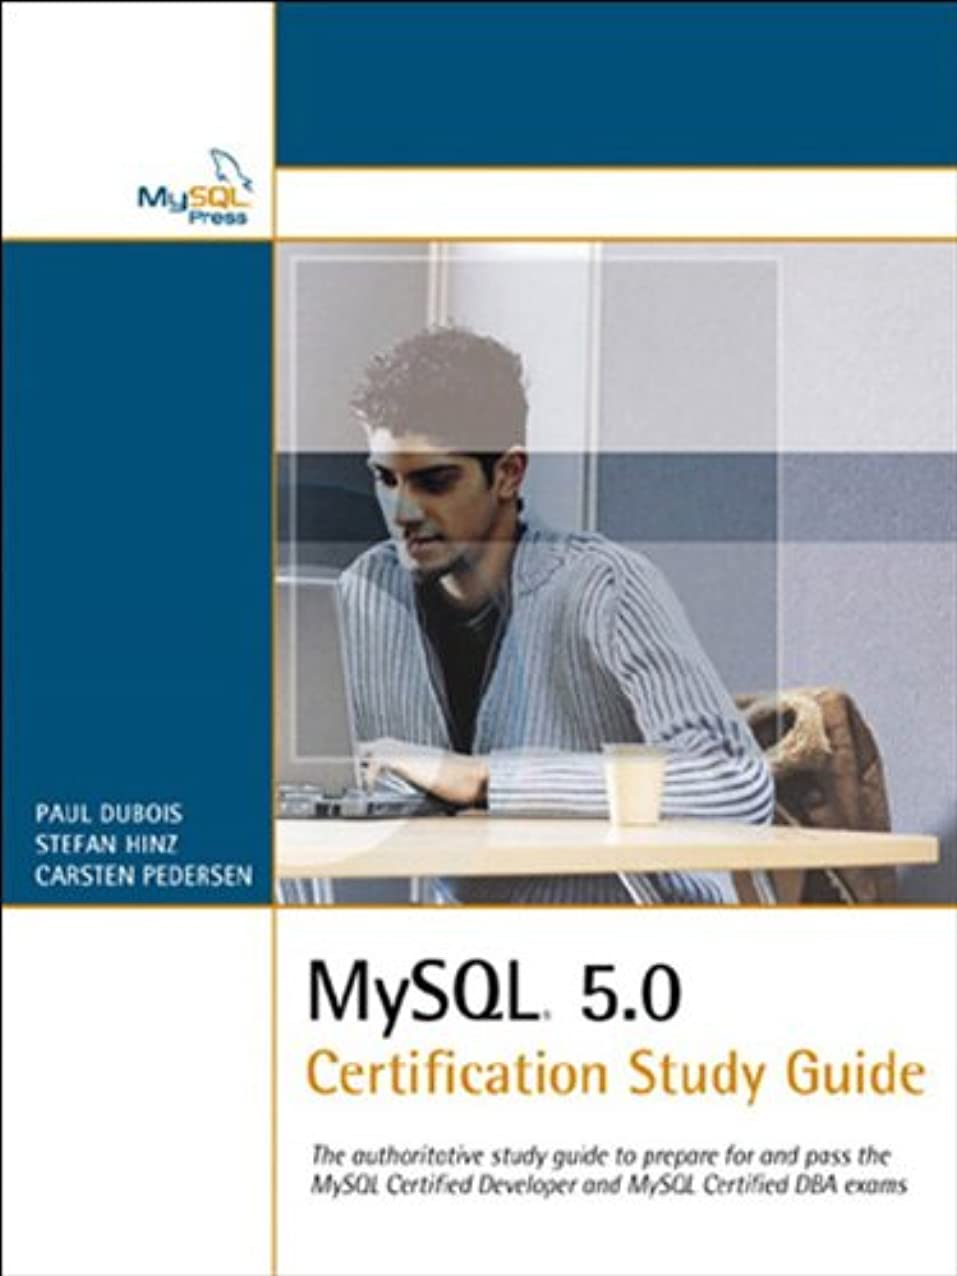 公式コメンテーターバイナリMySQL 5.0 Certification Study Guide: MYSQL 5 CERT STUDY GUIDE _p2 (English Edition)